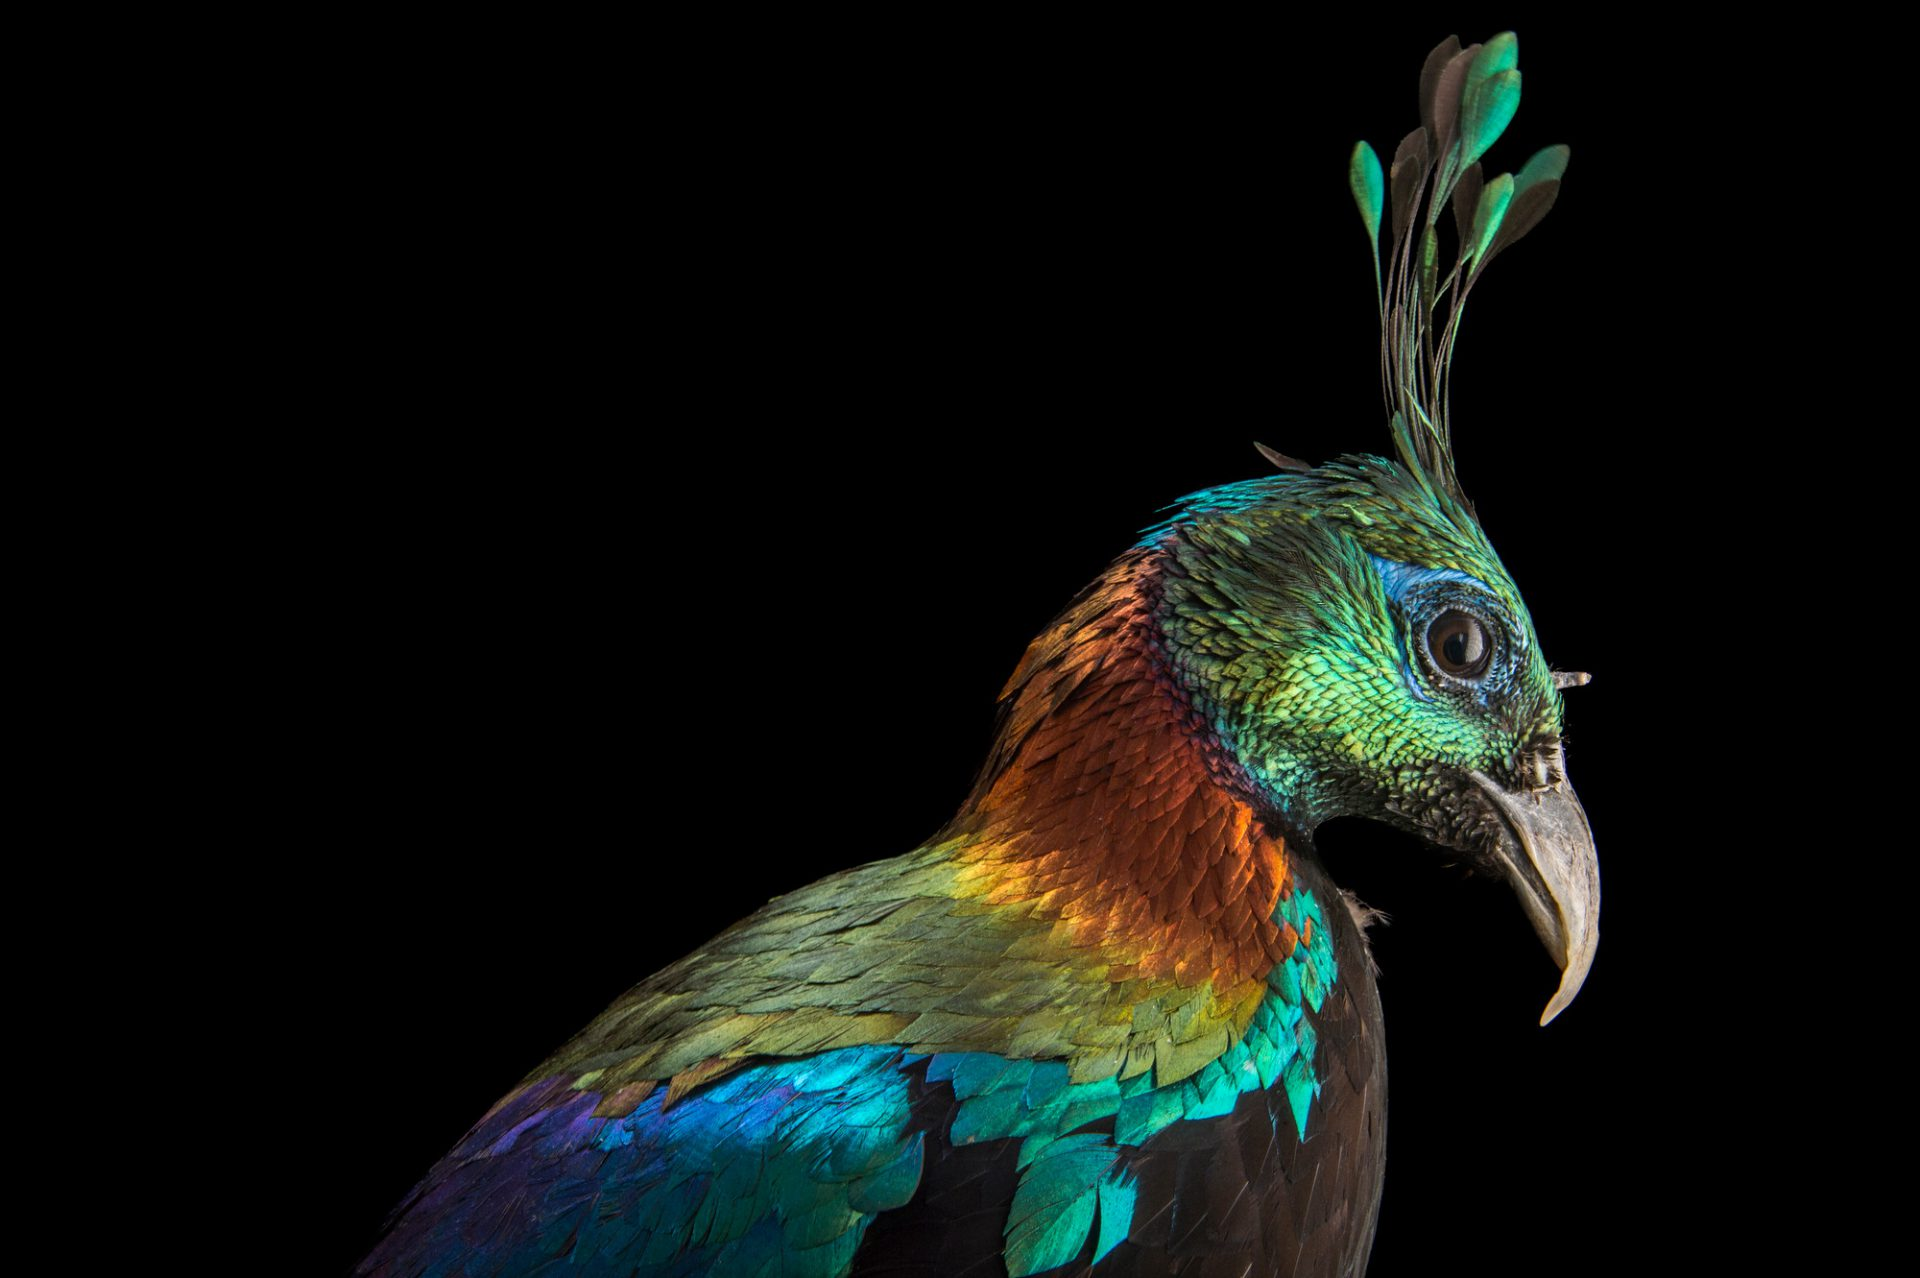 A male Himalayan monal pheasant (Lophophorus impejanus) at Pheasant Heaven, a private pheasant breeding center near Clinton, NC.